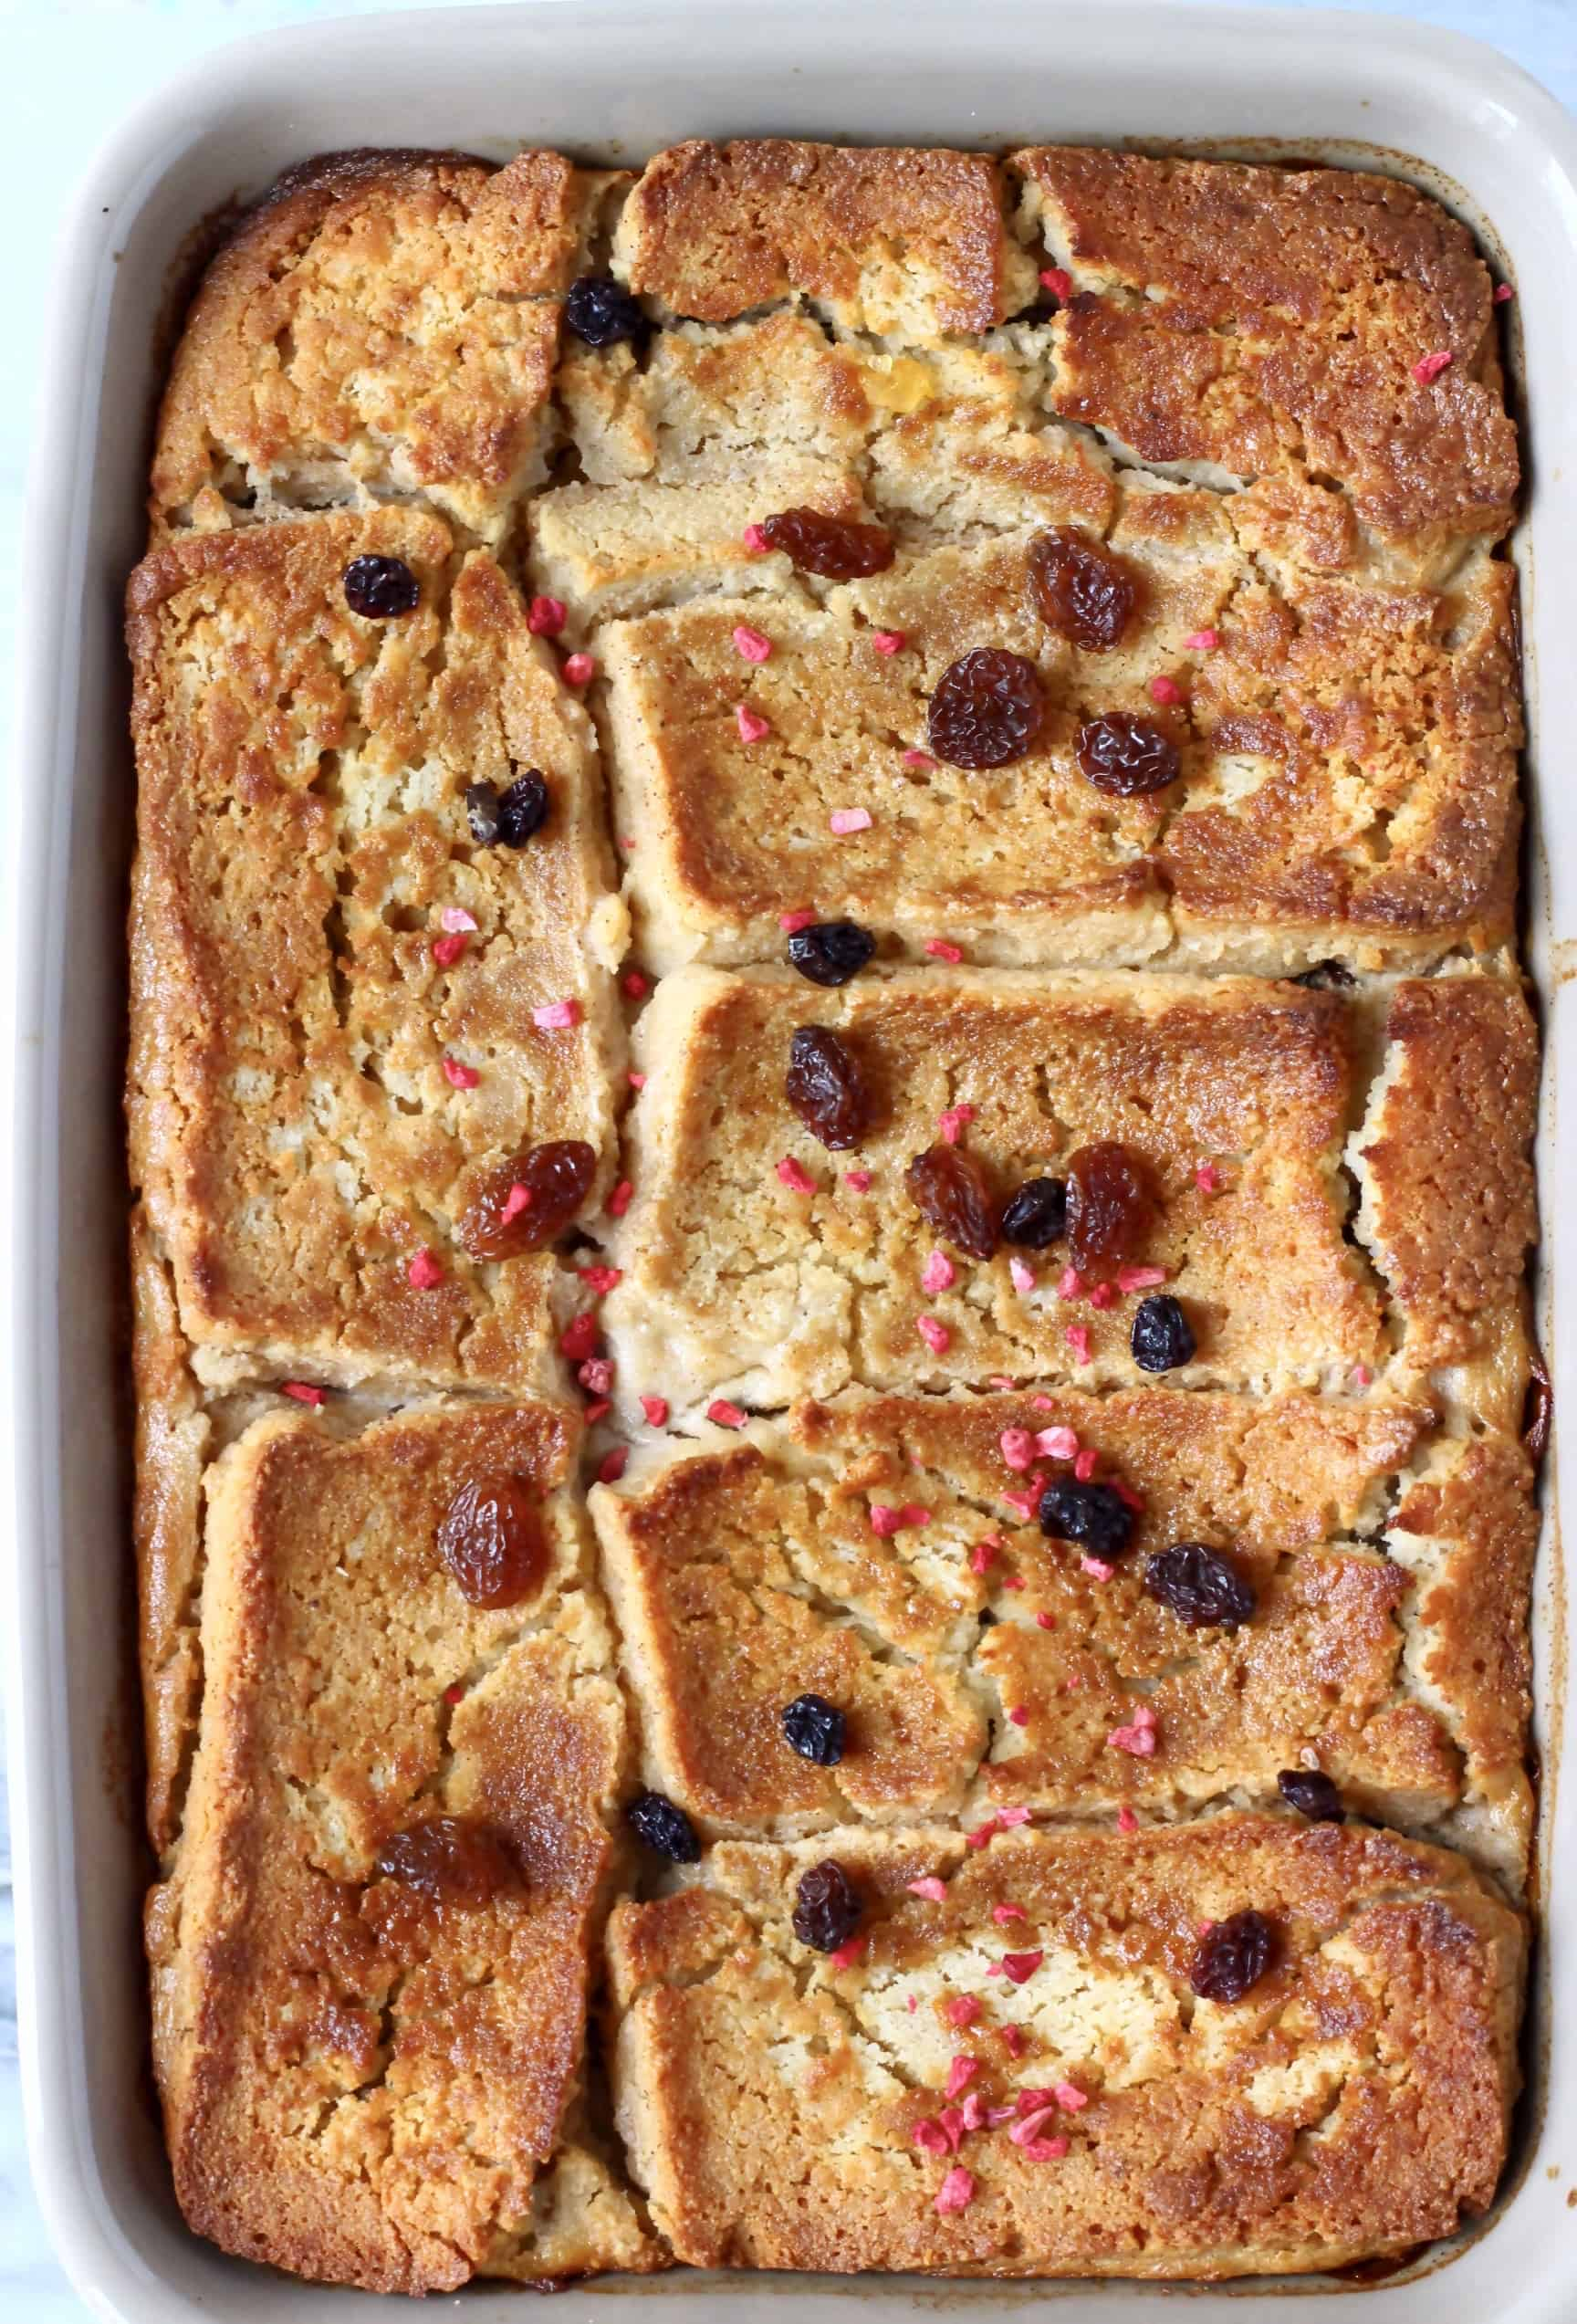 Bread pudding in a grey rectangular baking dish sprinkled with raisins